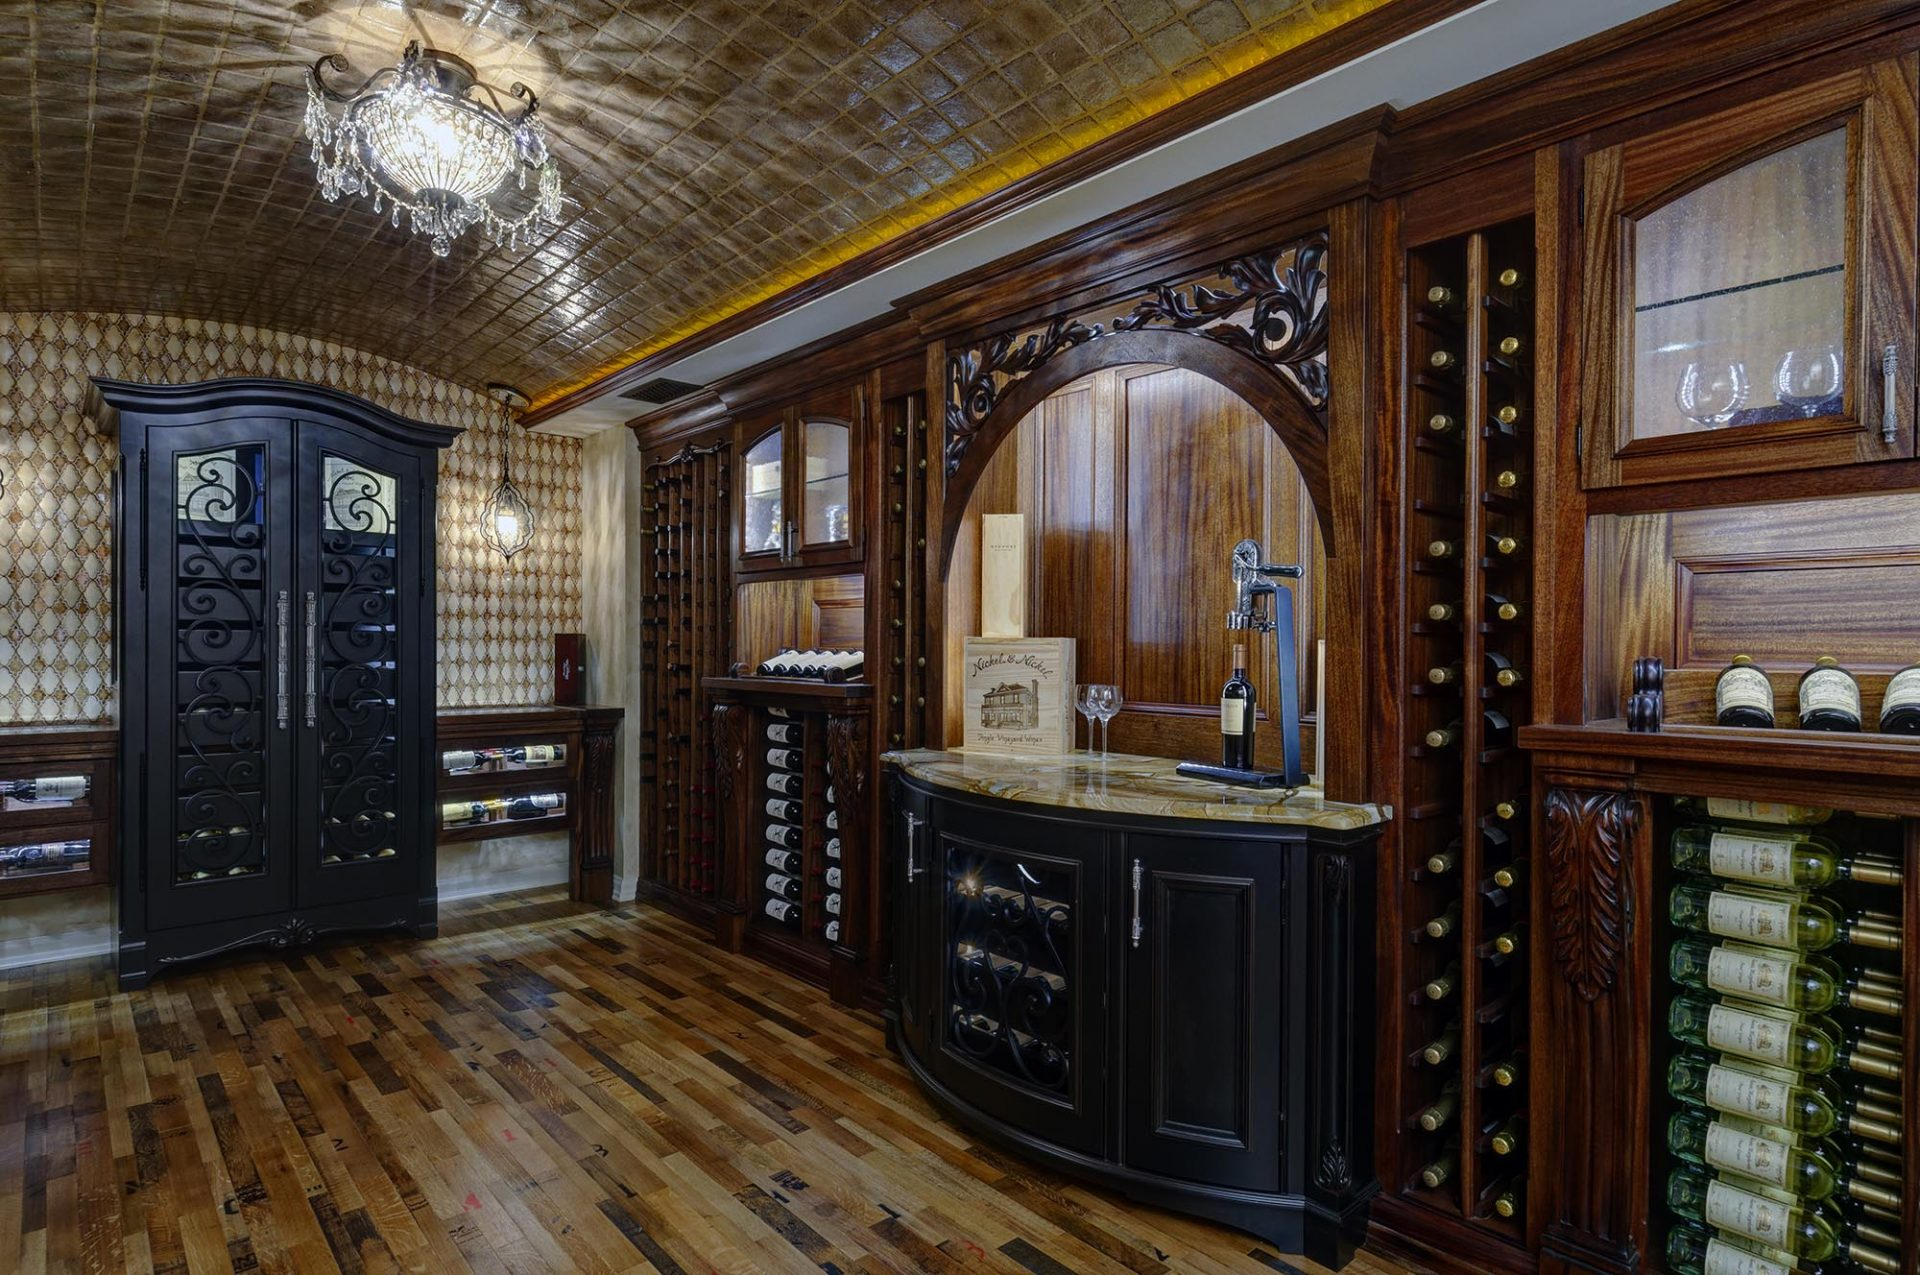 Wine cellar, Dublin, Dave Fox, Remodel, wine storage, arched ceiling, dark wood, wine boxes, chandelier, tile, iron doors